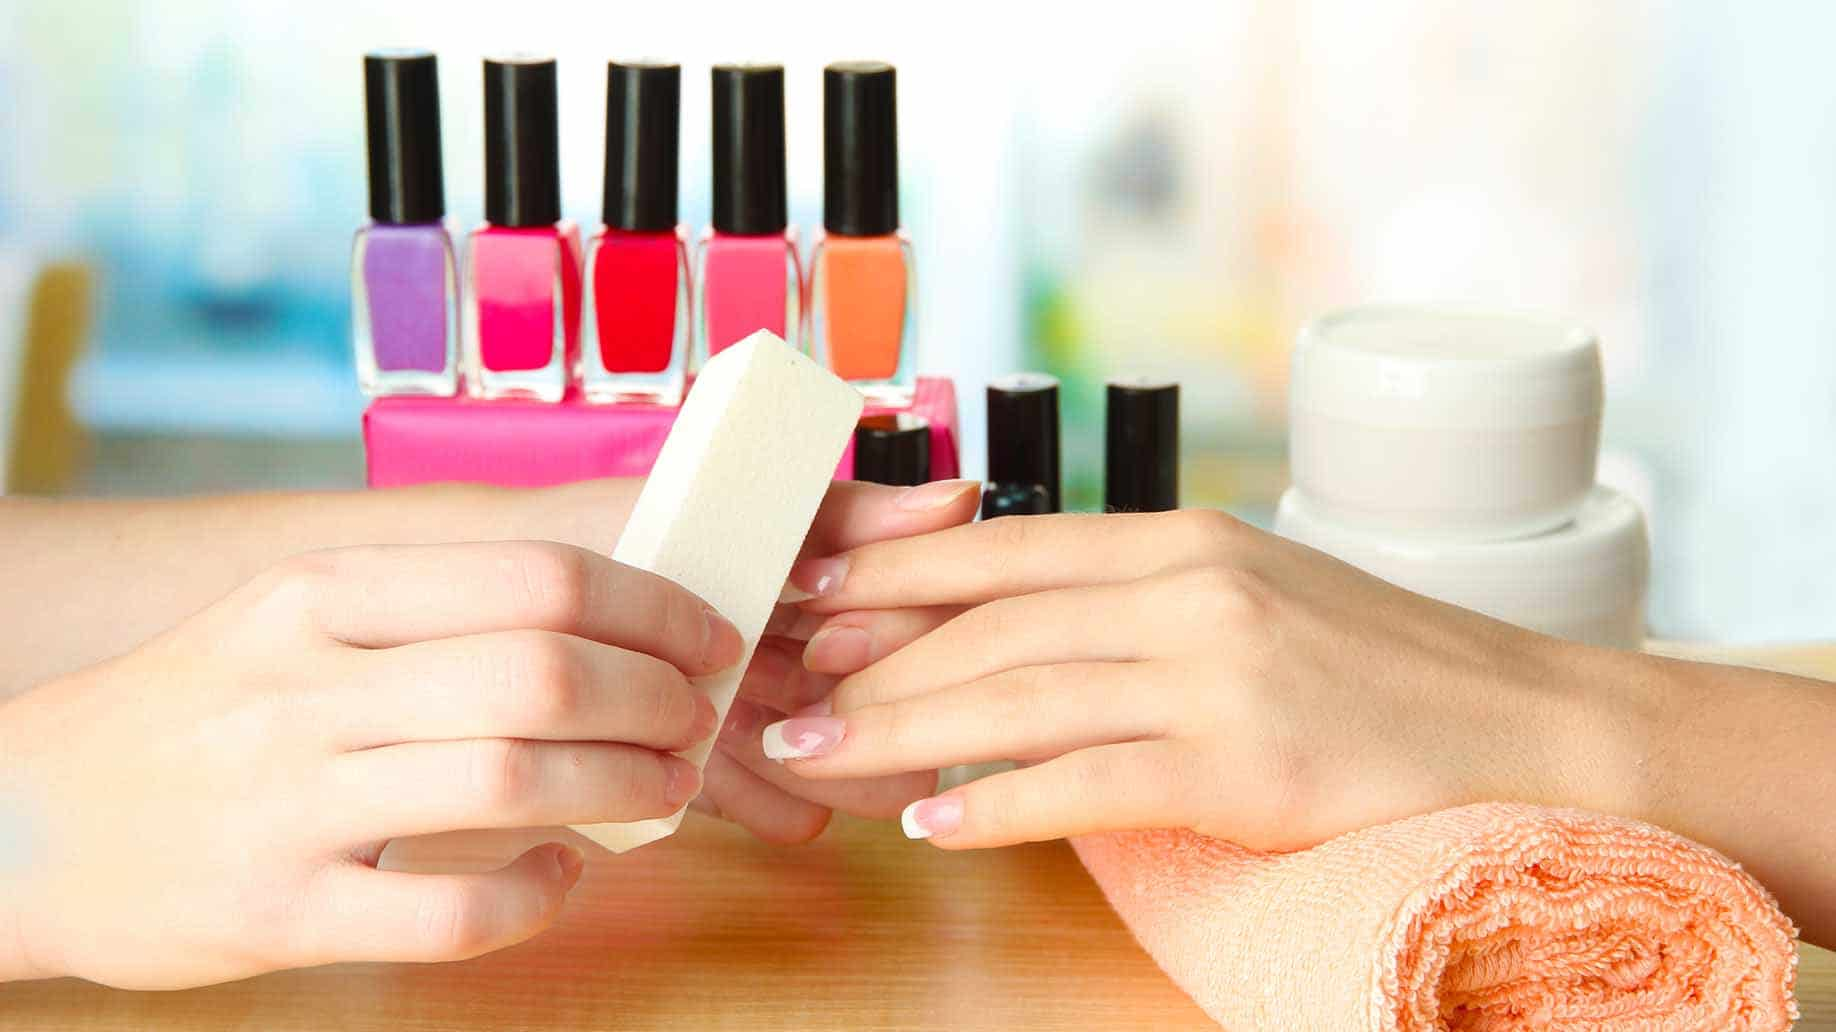 manicure process beauty salon close